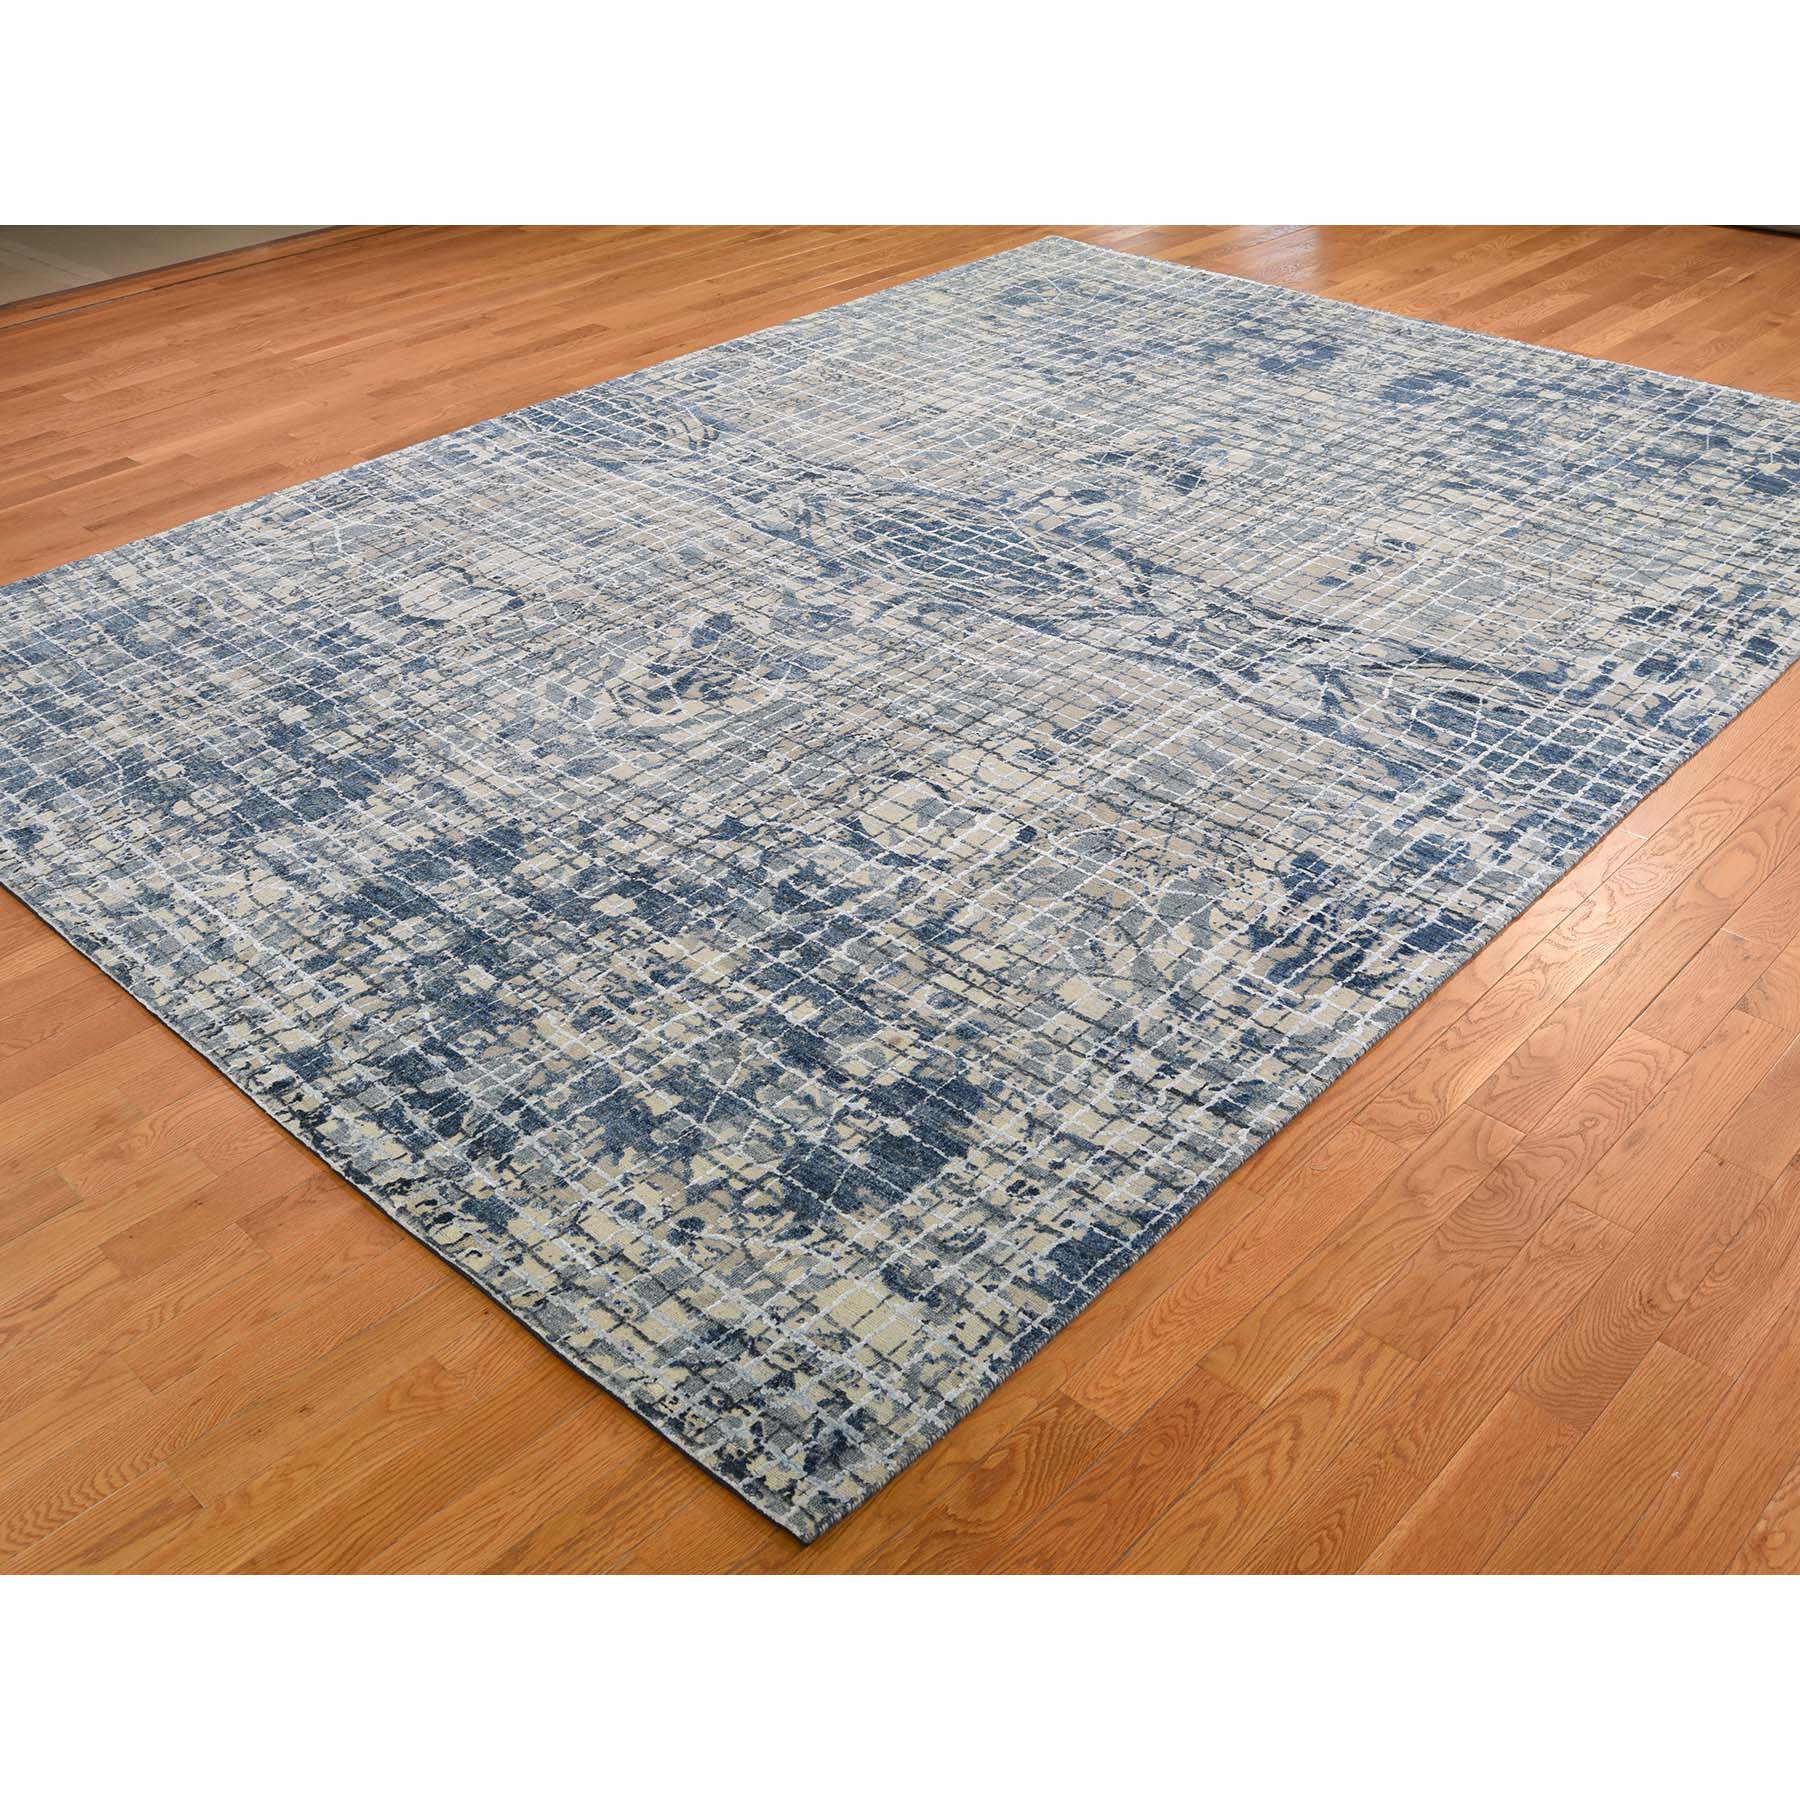 9-1 x12-2  THE GRAPH DESIGN Silk With Oxidized Wool Hand-Knotted Oriental Rug